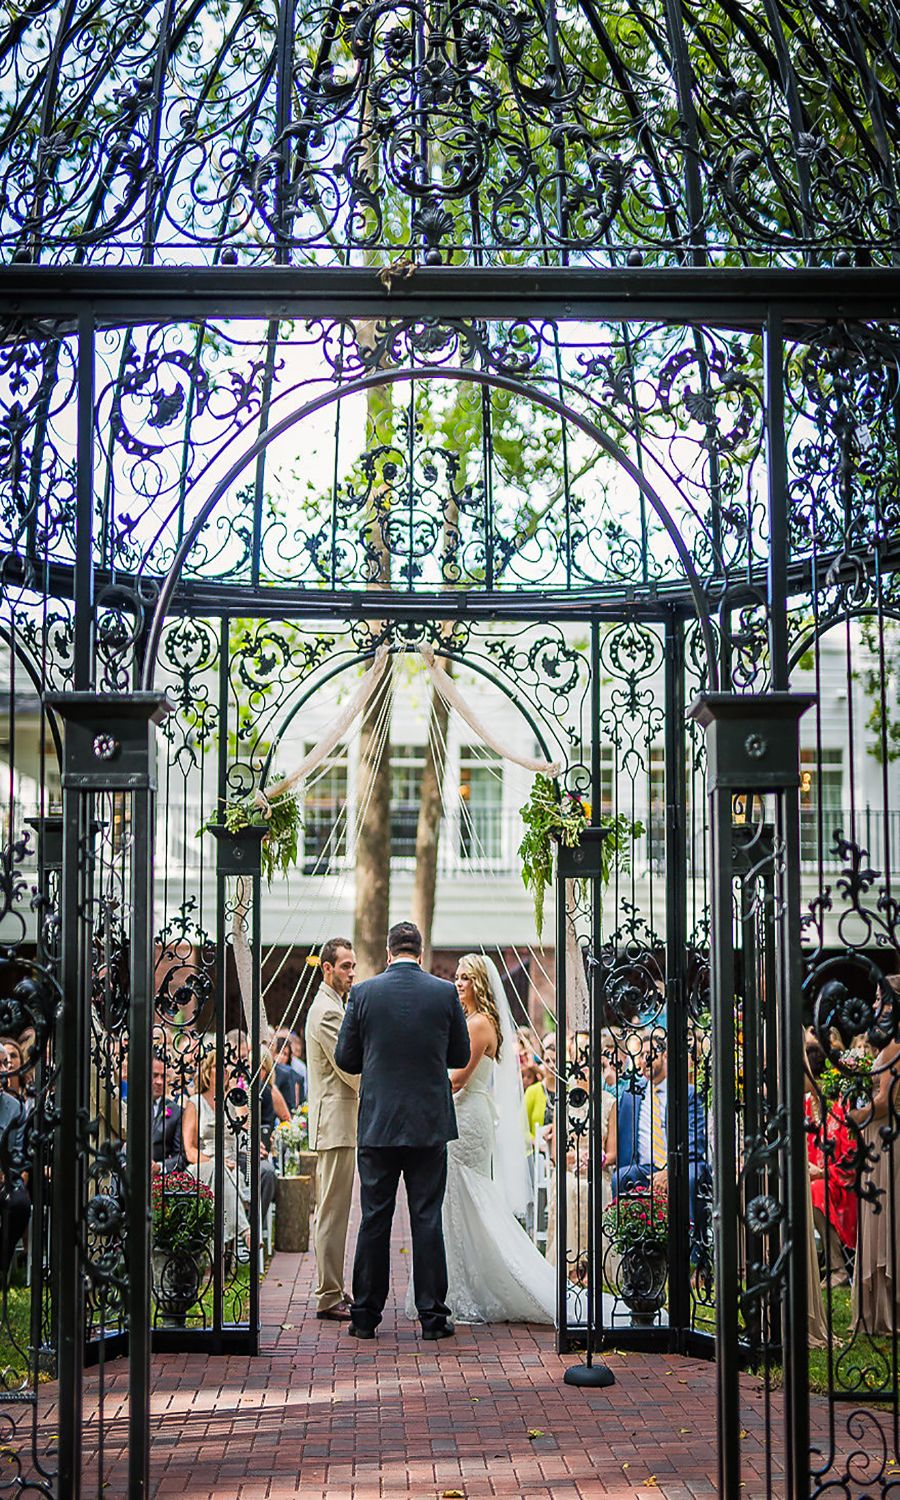 Black Iris Estate Wedding Gallery The Perfect Venue For Your Special Event Or Wedding Wedding Venues Indiana Best Wedding Venues Wedding Venues Indianapolis